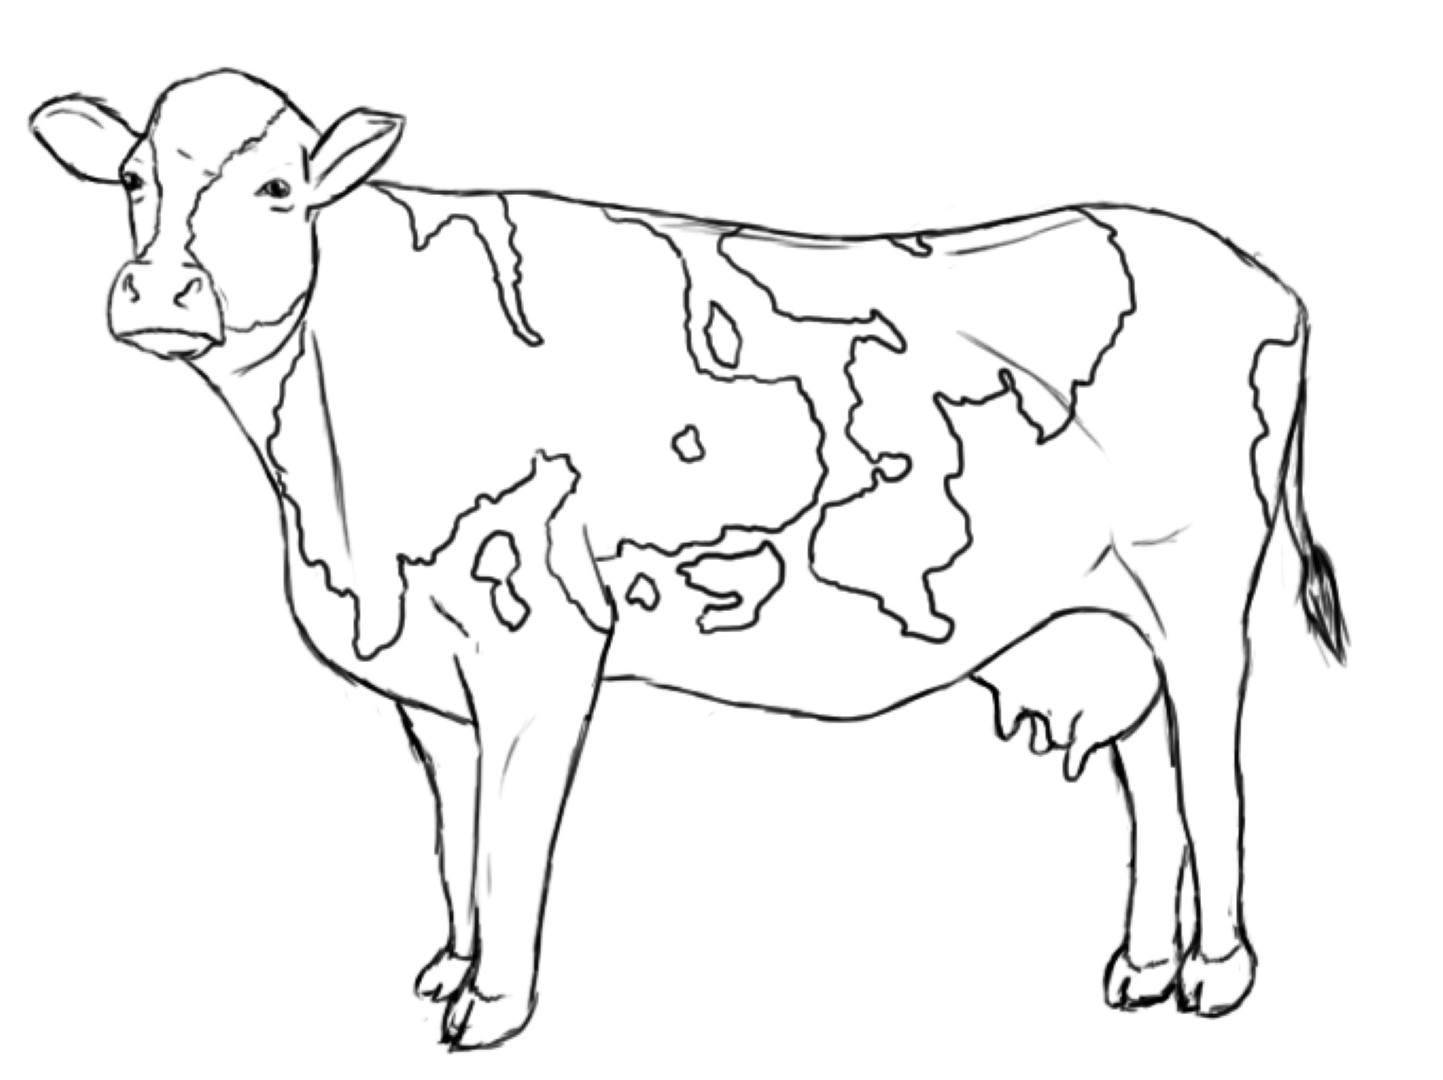 dairy cow coloring pages dairy cow coloring pages coloring home dairy cow pages coloring